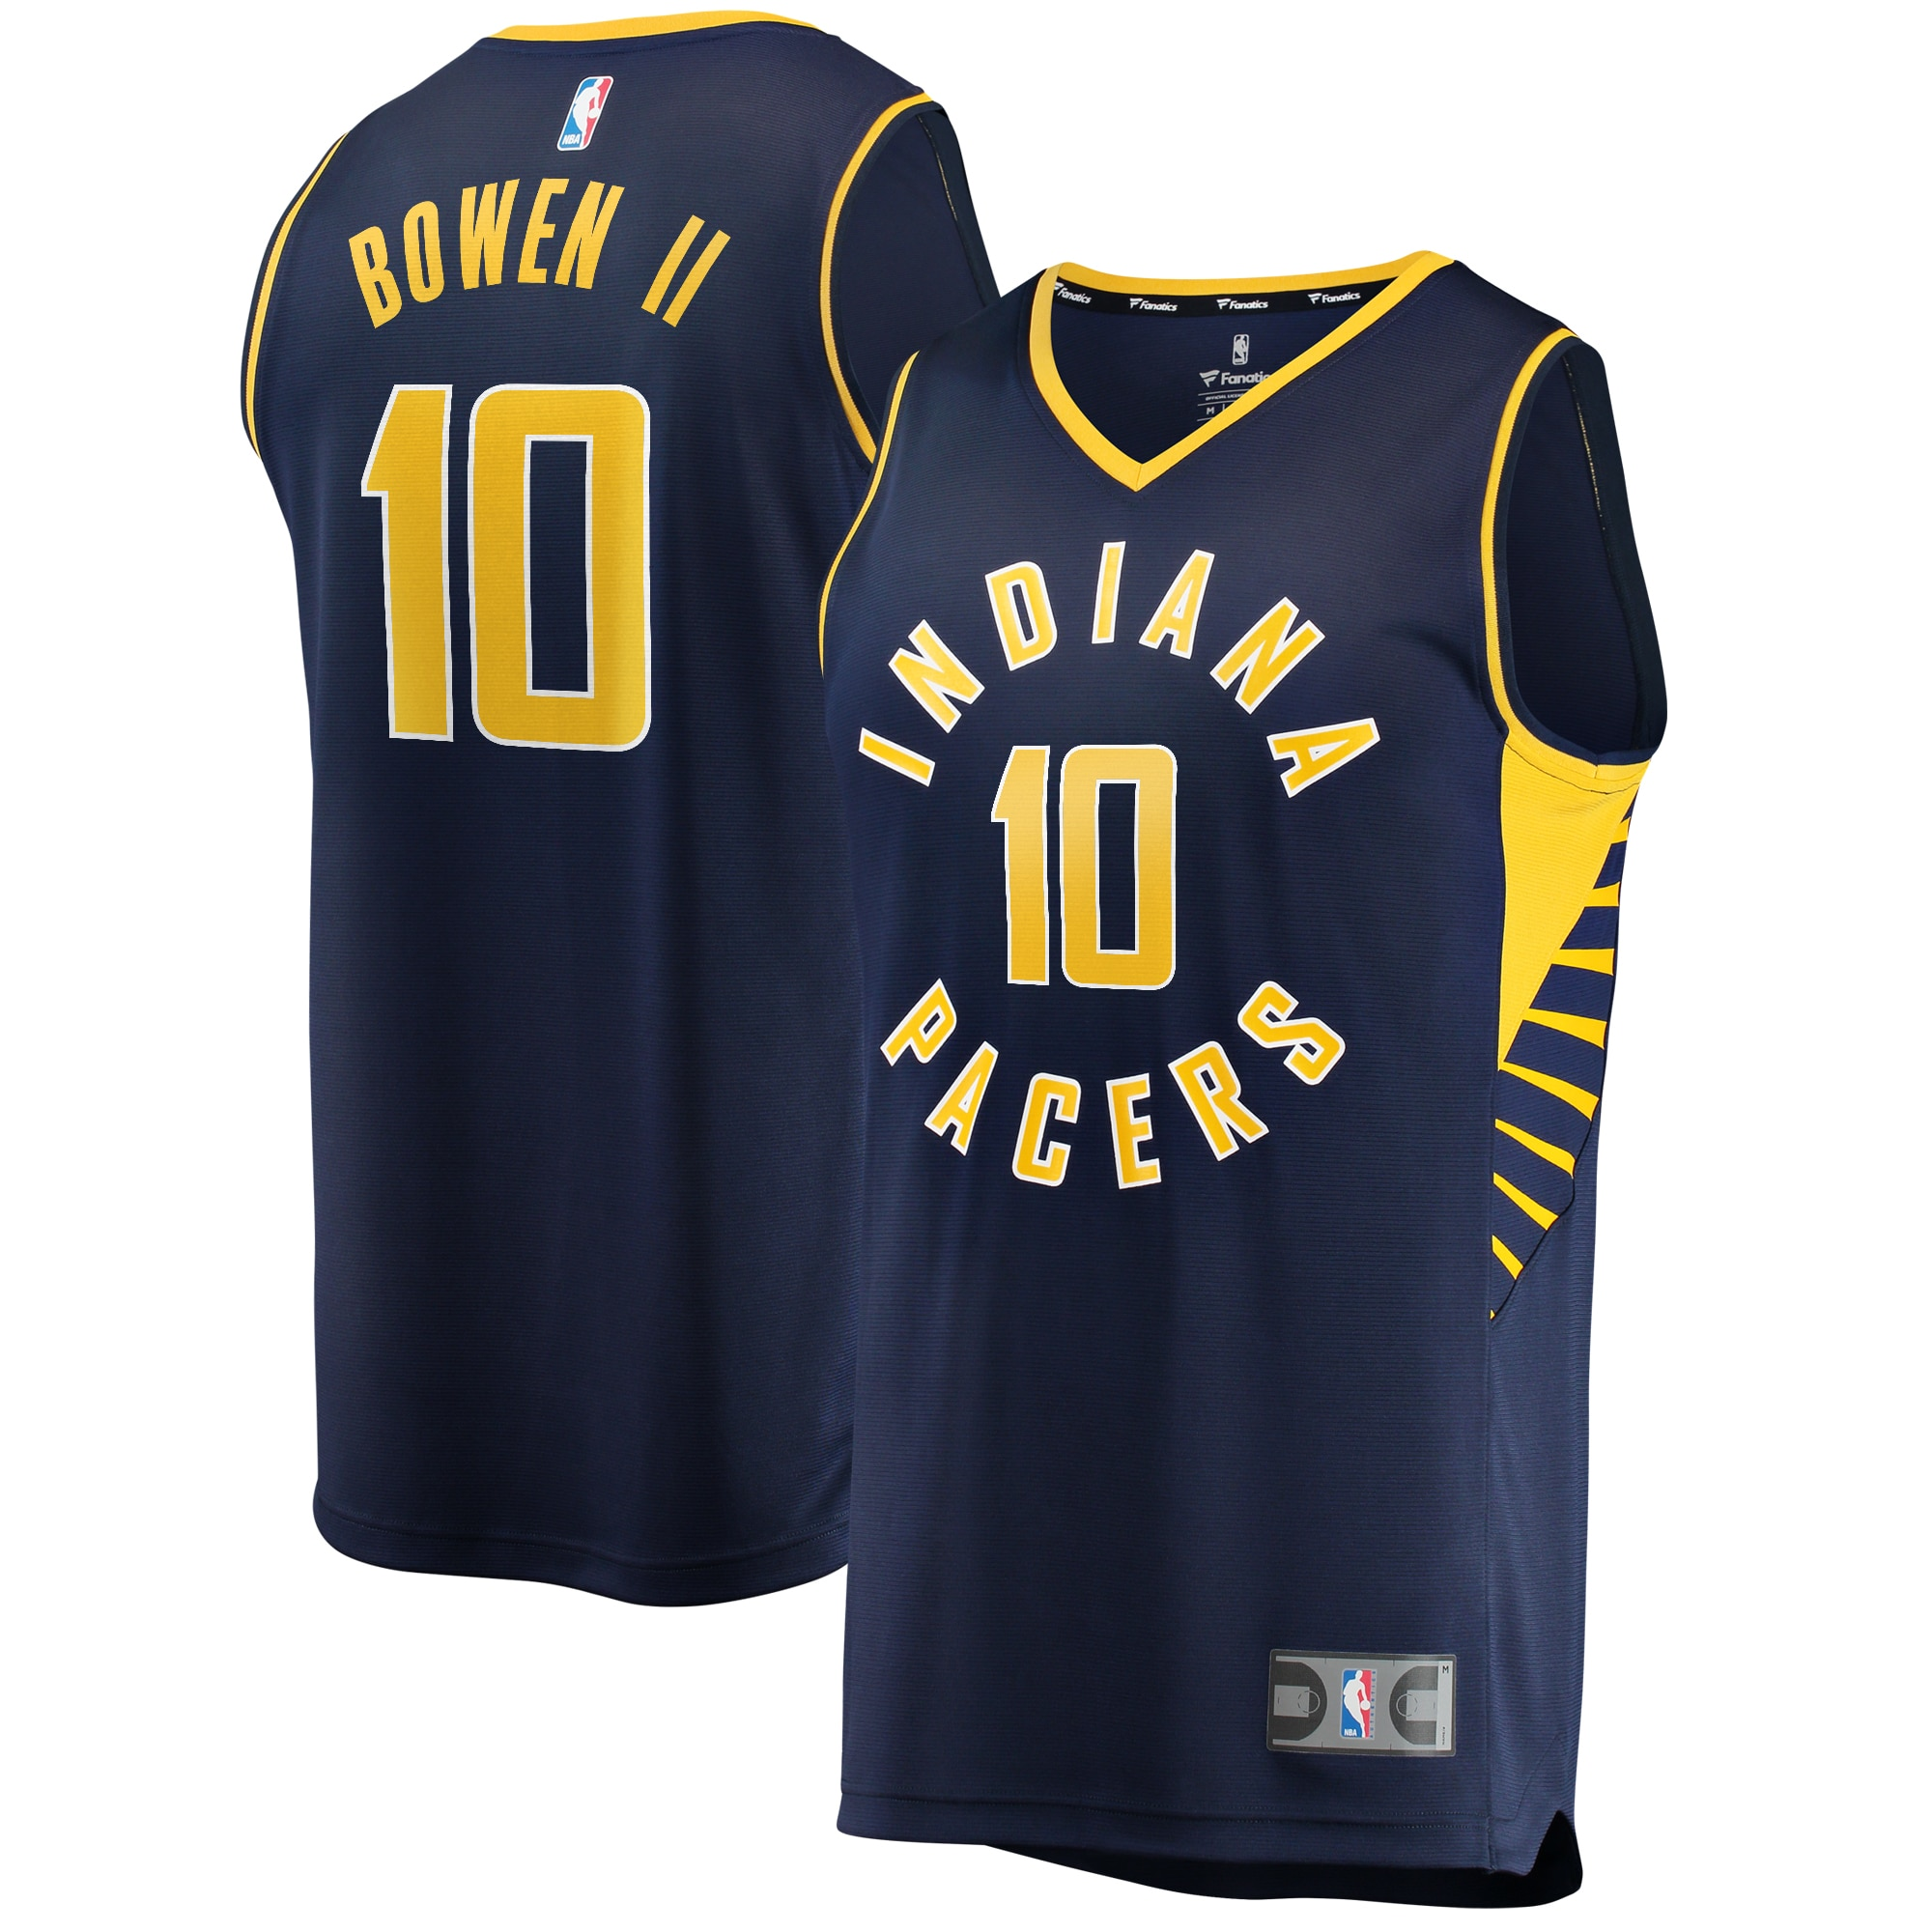 Brian Bowen II Indiana Pacers Fanatics Branded Youth Fast Break Replica Jersey Navy - Icon Edition